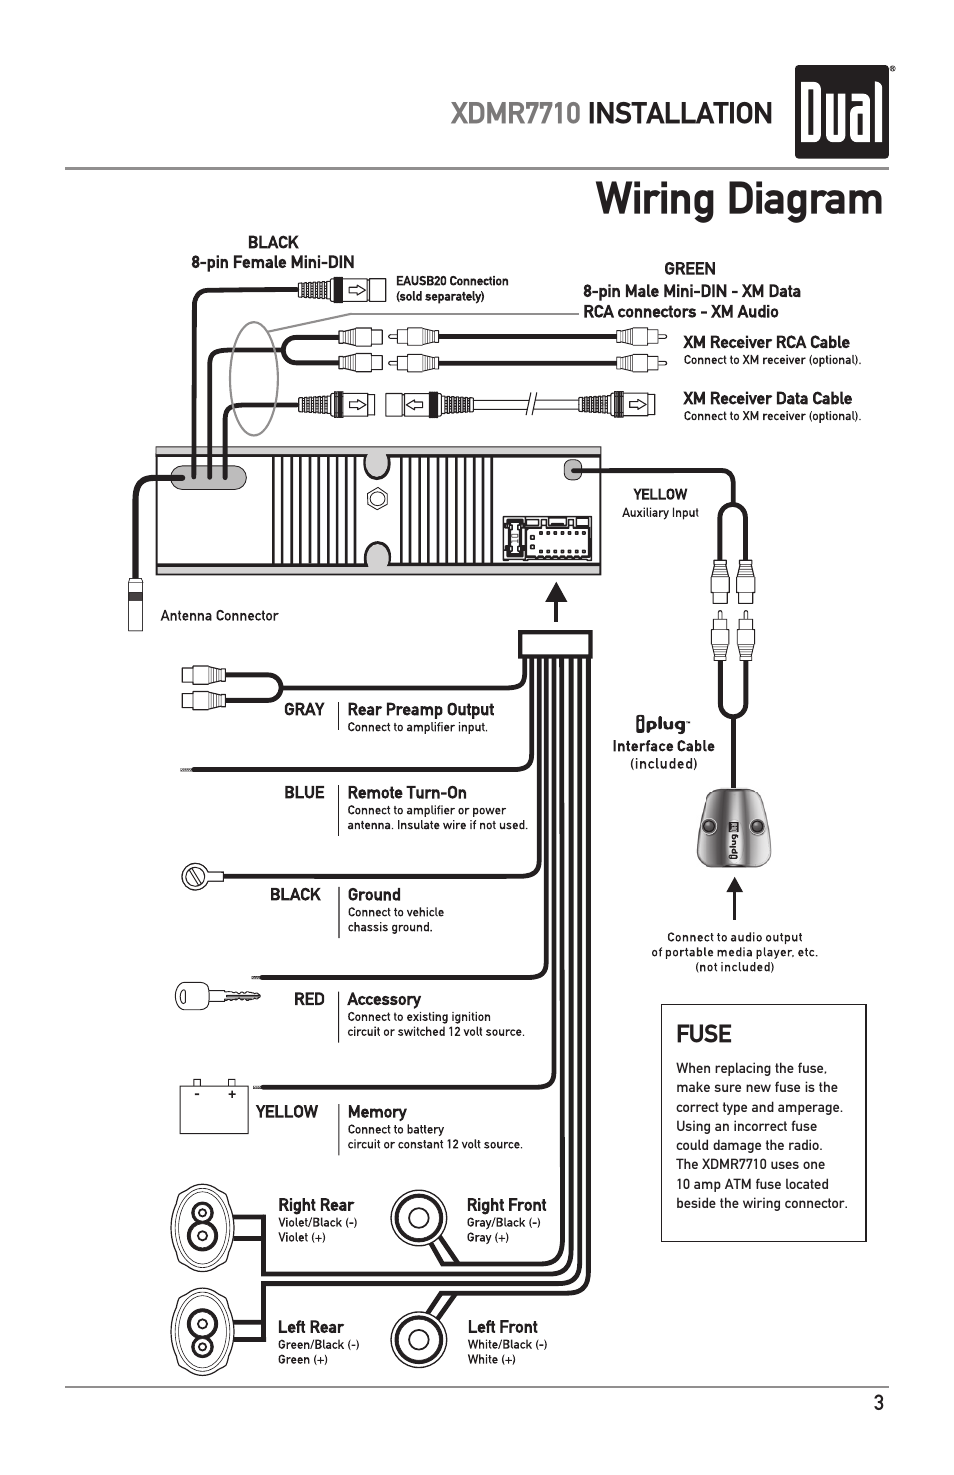 Wiring Diagram In Addition Dual Car Stereo Wire Harness On Dual Radio